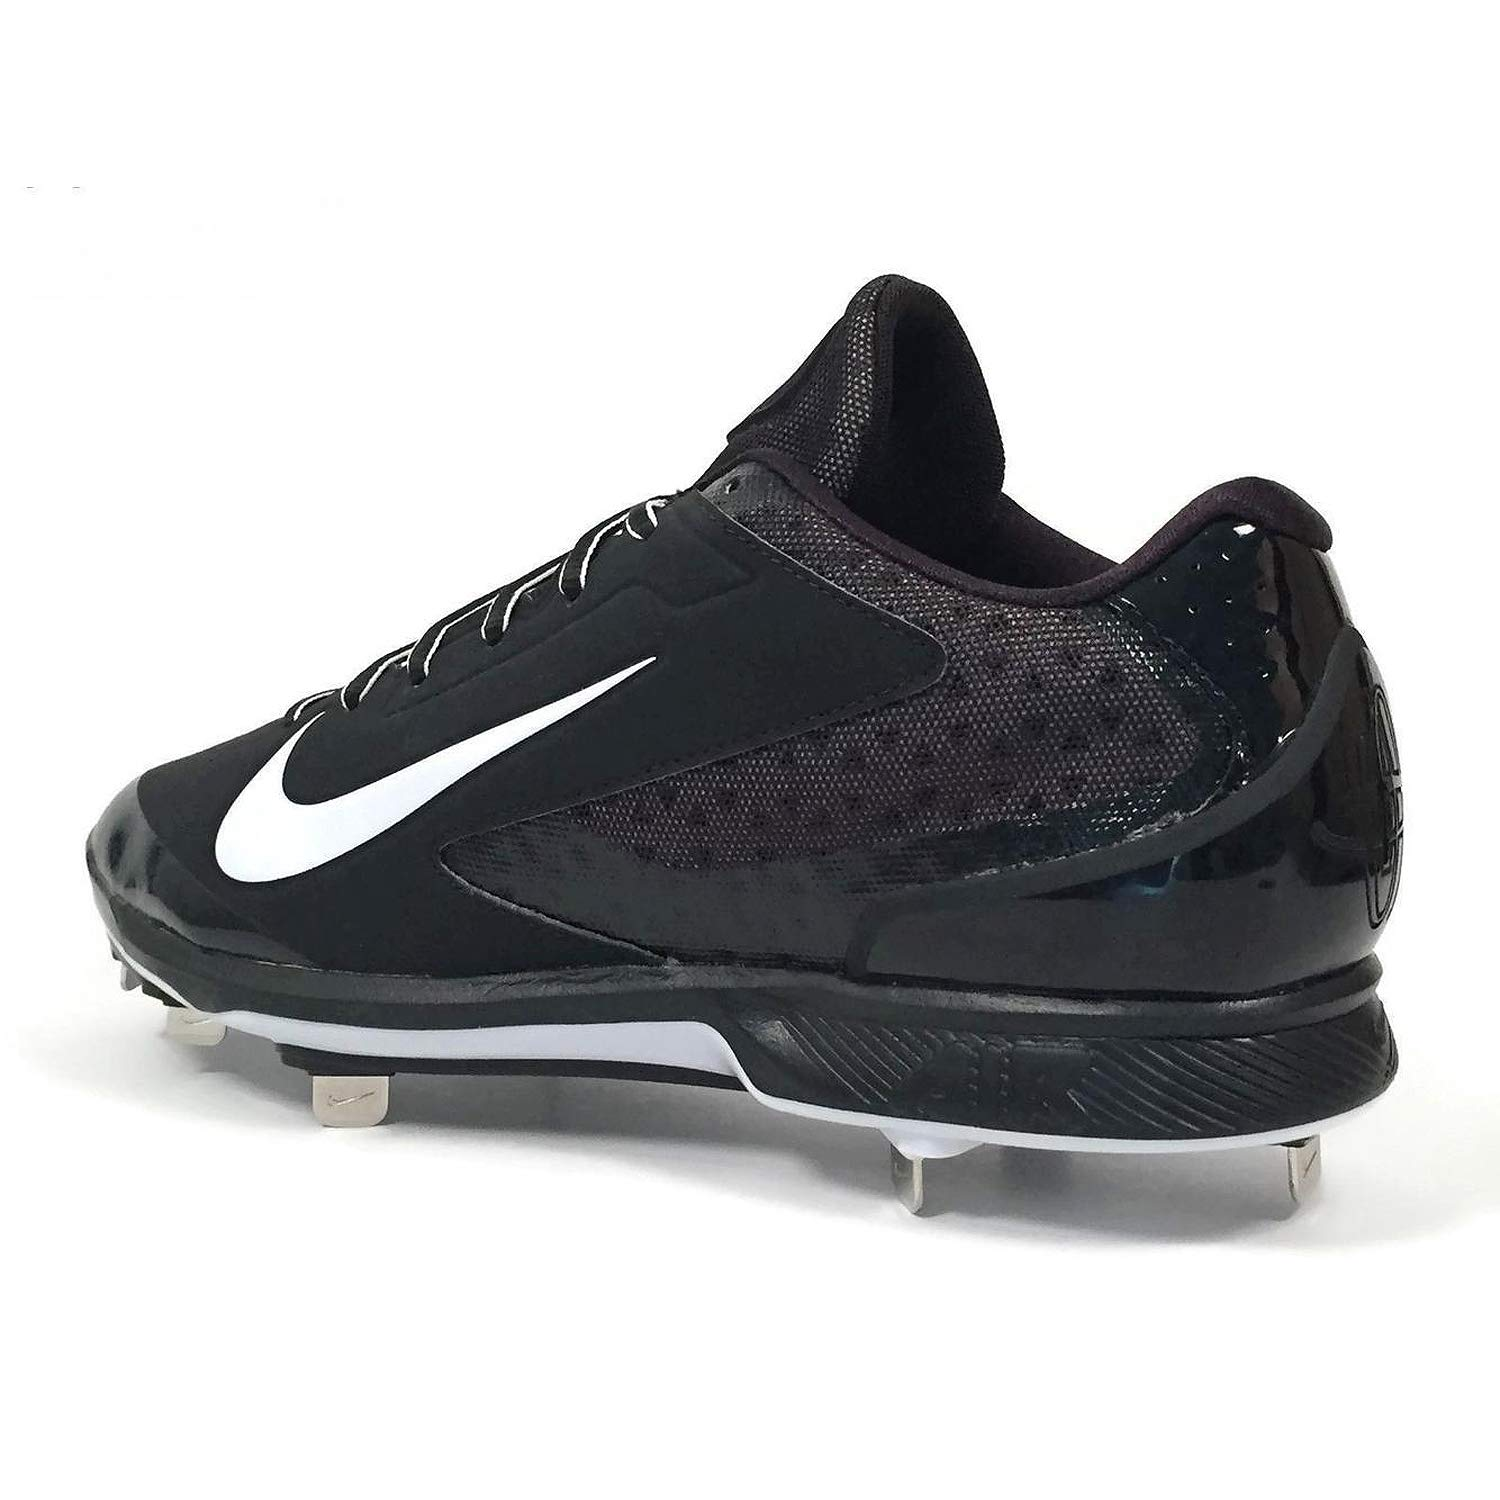 best loved 243c2 90884 Amazon.com   Nike Men s Air Huarache Pro Baseball Cleat   Baseball    Softball